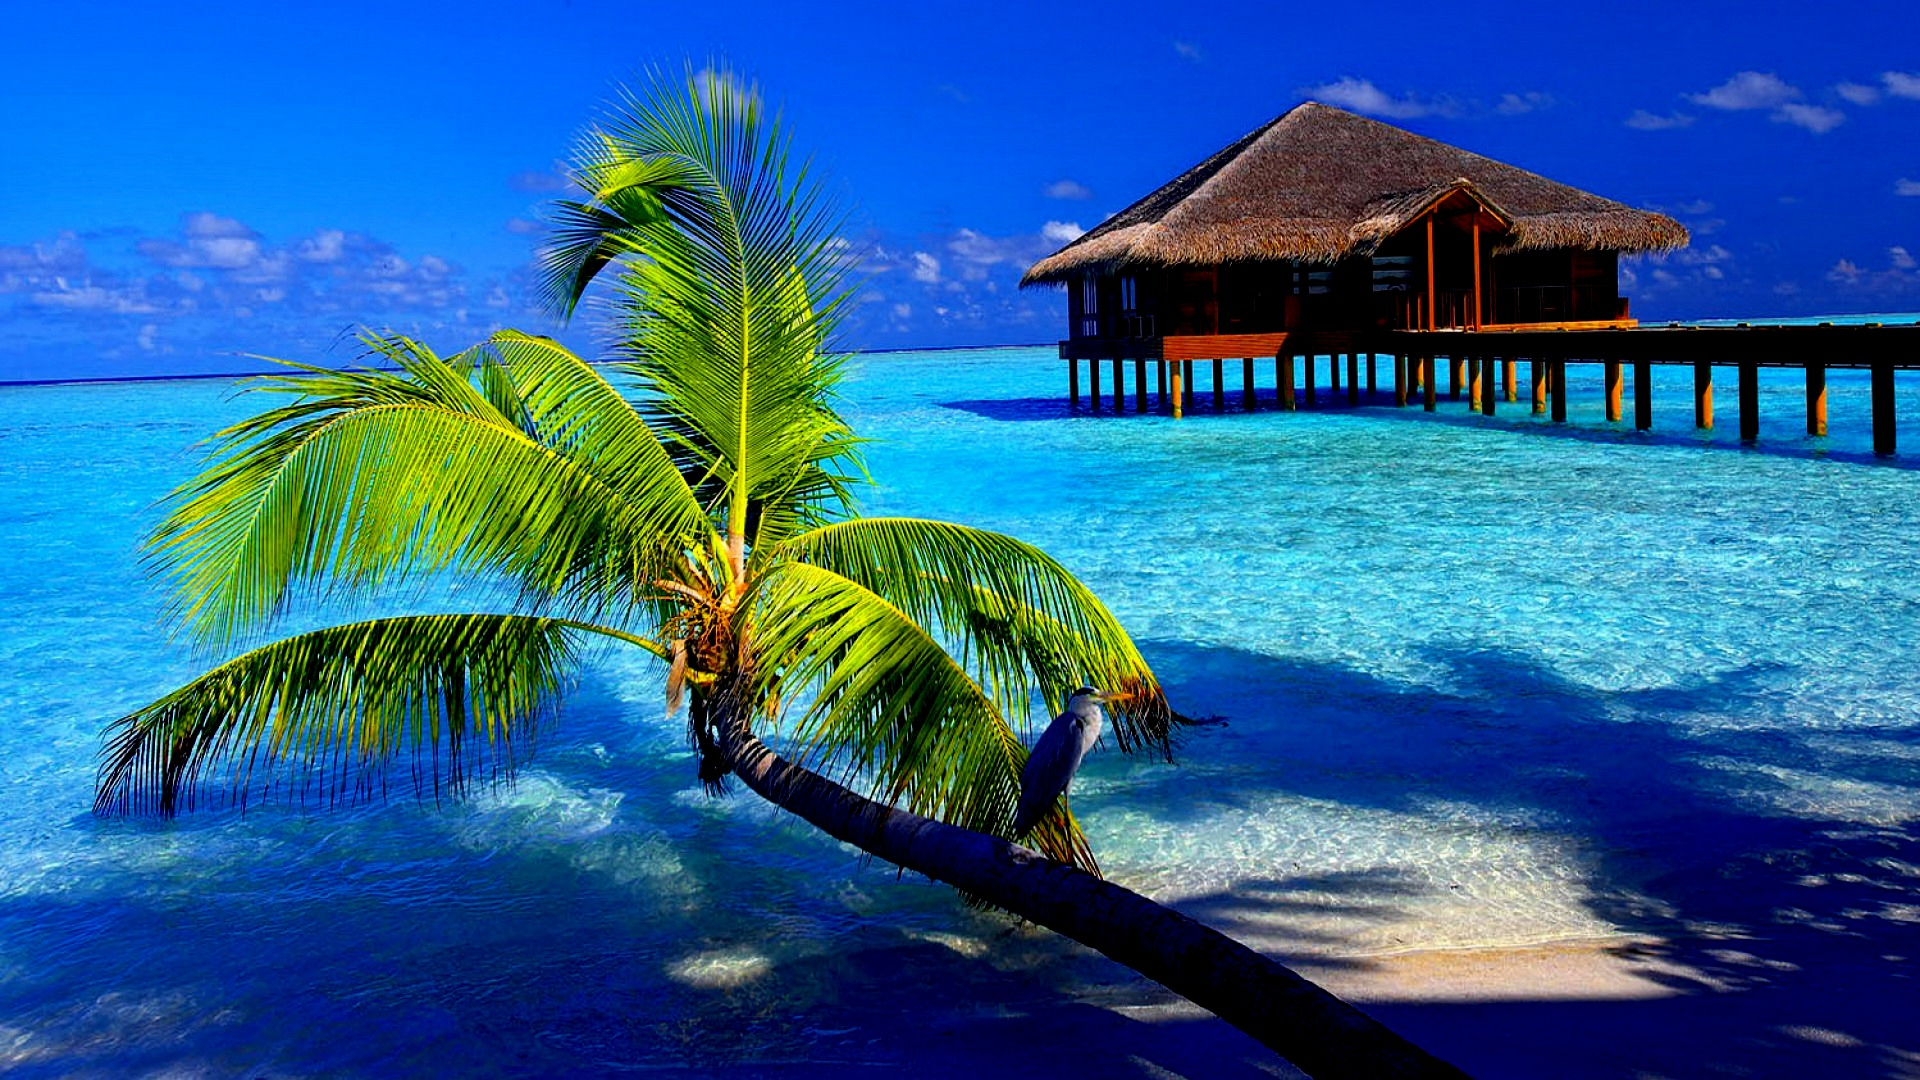 Beach Scenes Desktop Wallpapers: Desktop Wallpaper Beautiful Tropical Scenes